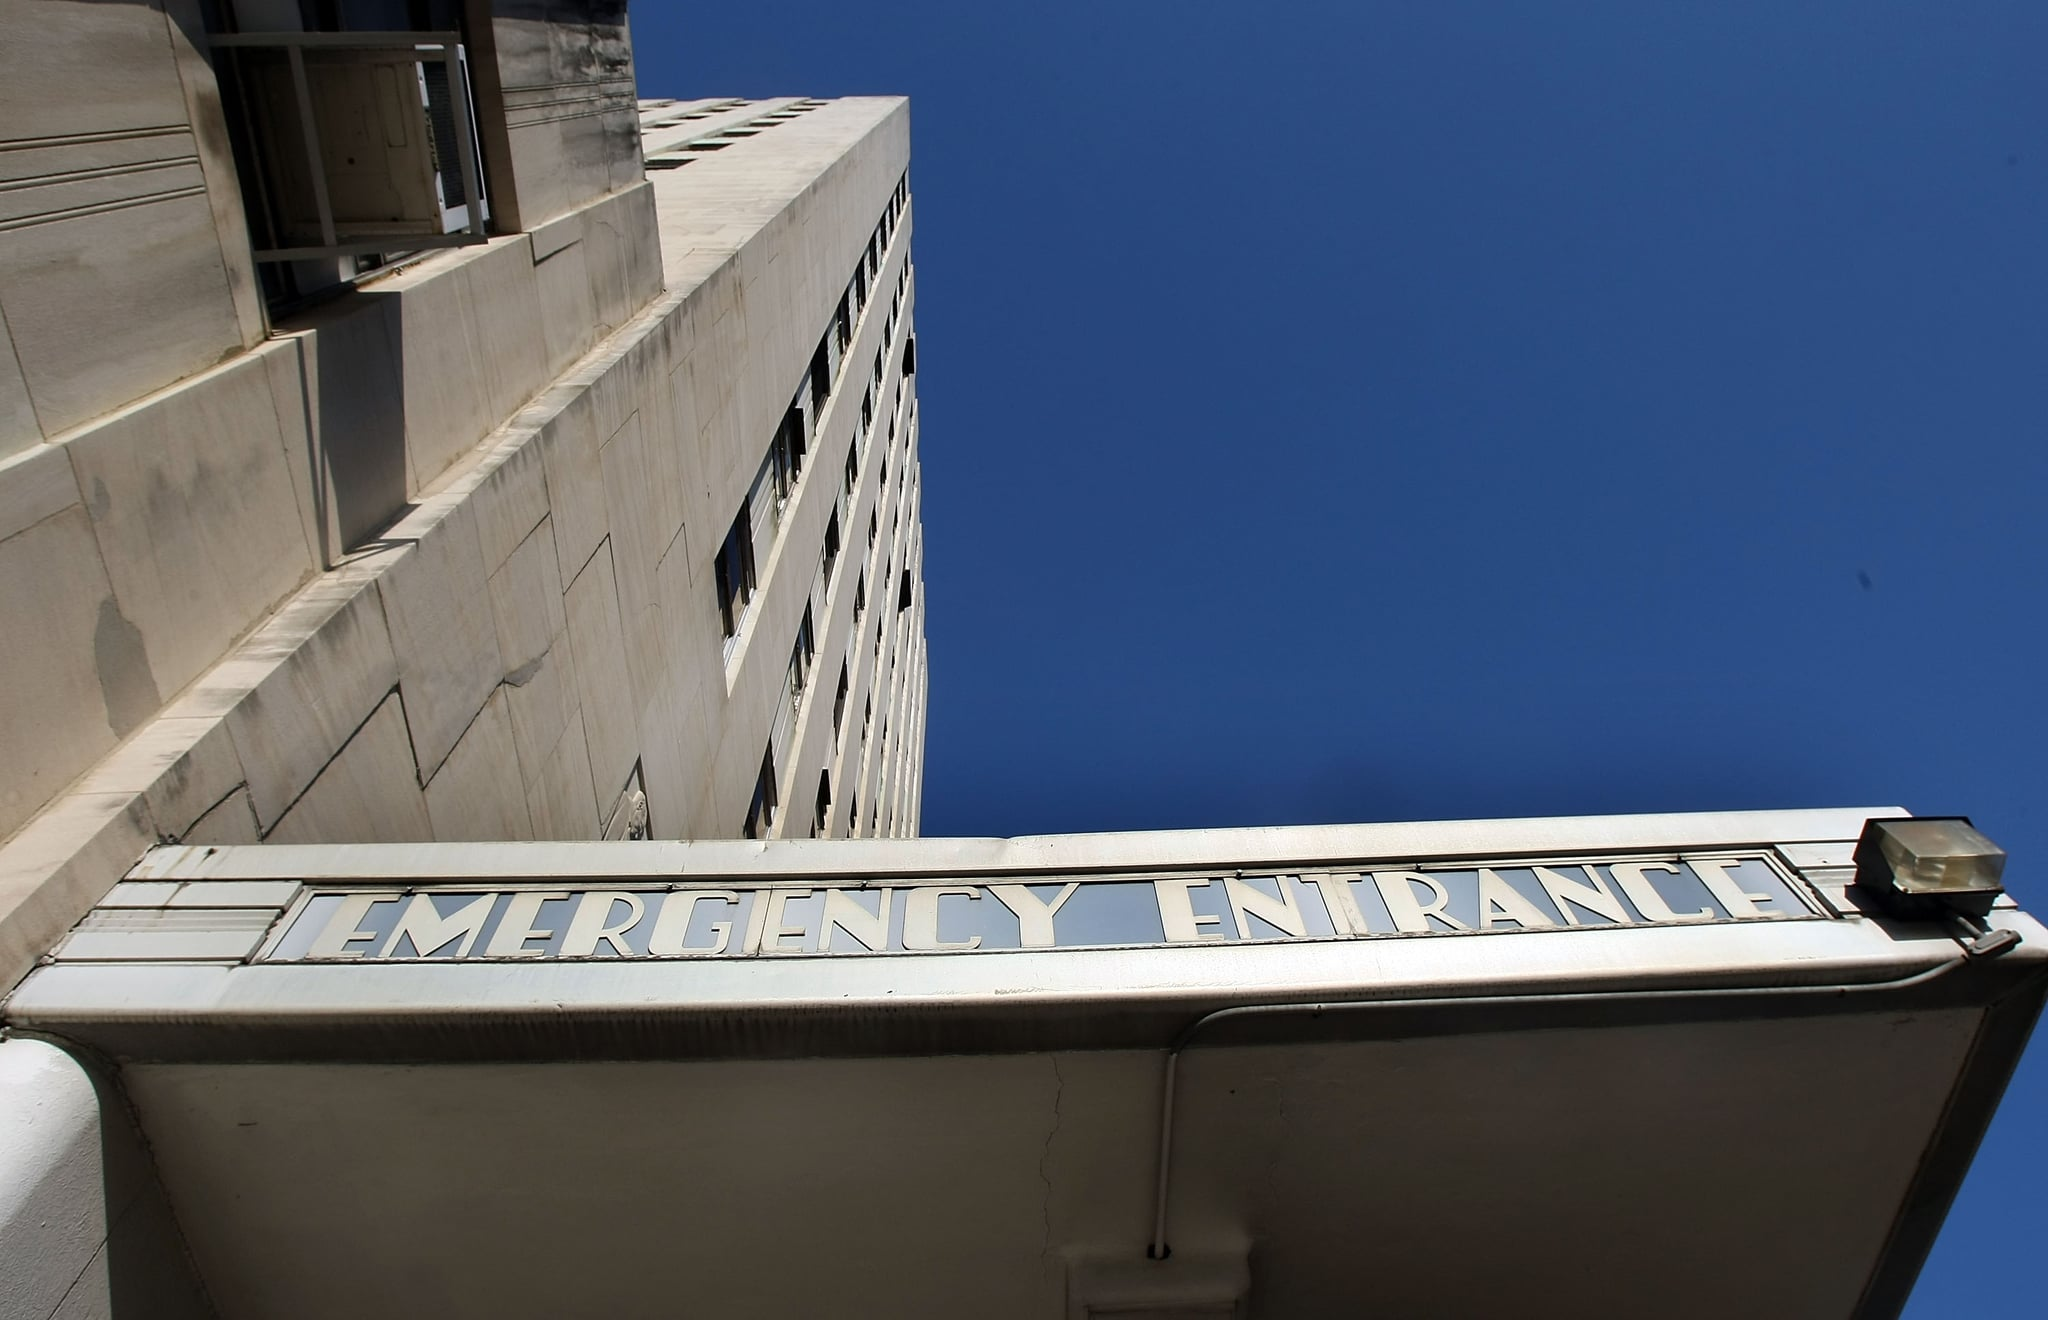 The front of Charity Hospital in New Orleans, Louisiana